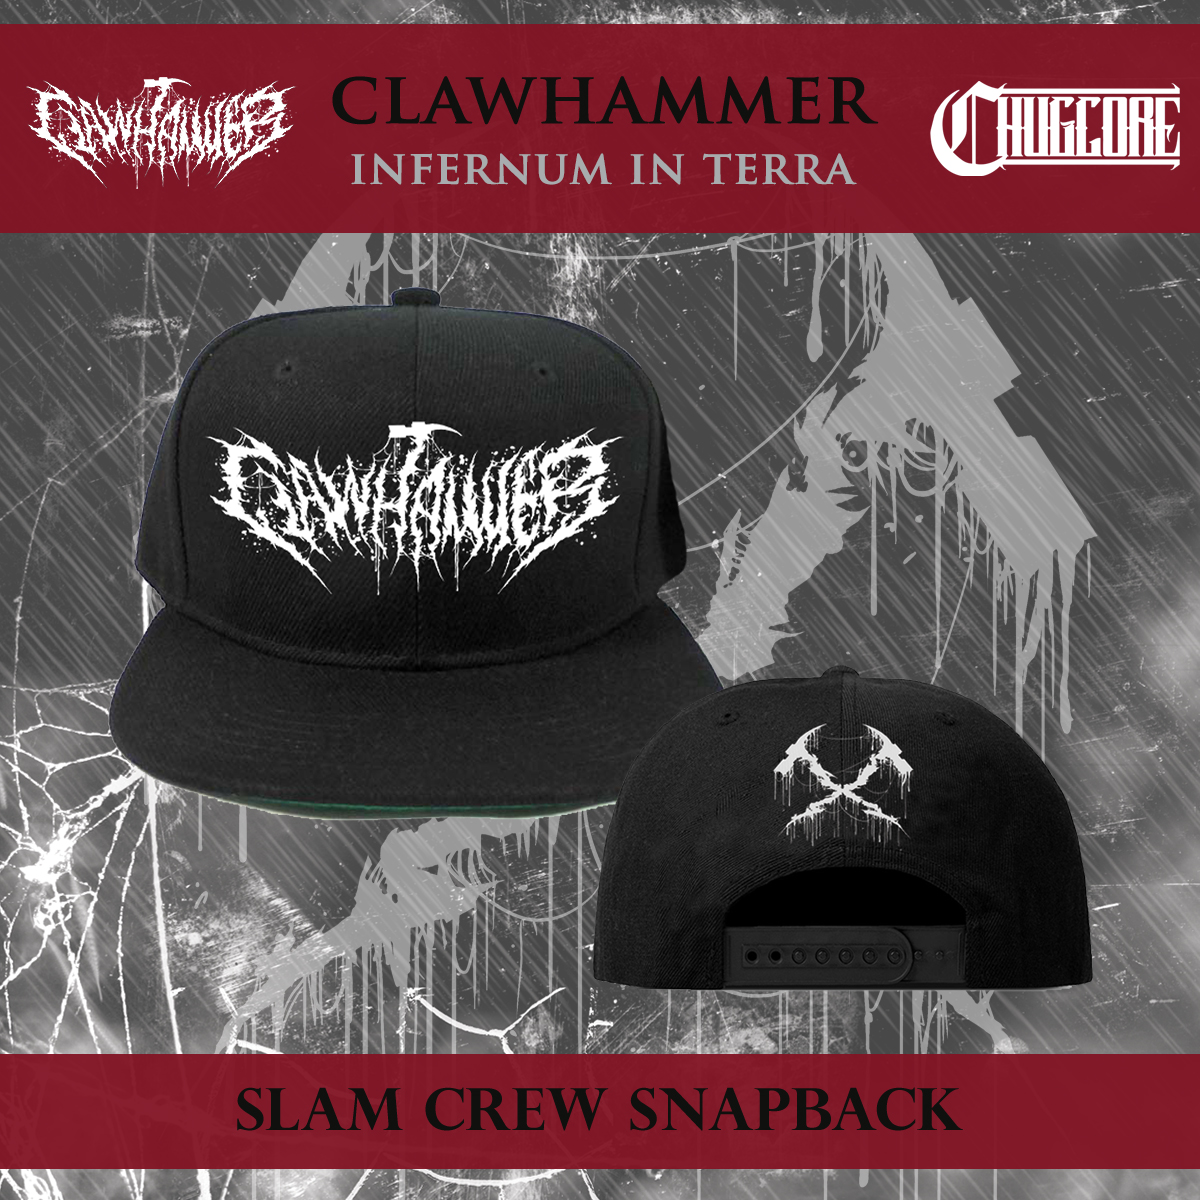 64db7f6b469 Clawhammer - Slam Crew Snapback · Chugcore · Online Store Powered by ...